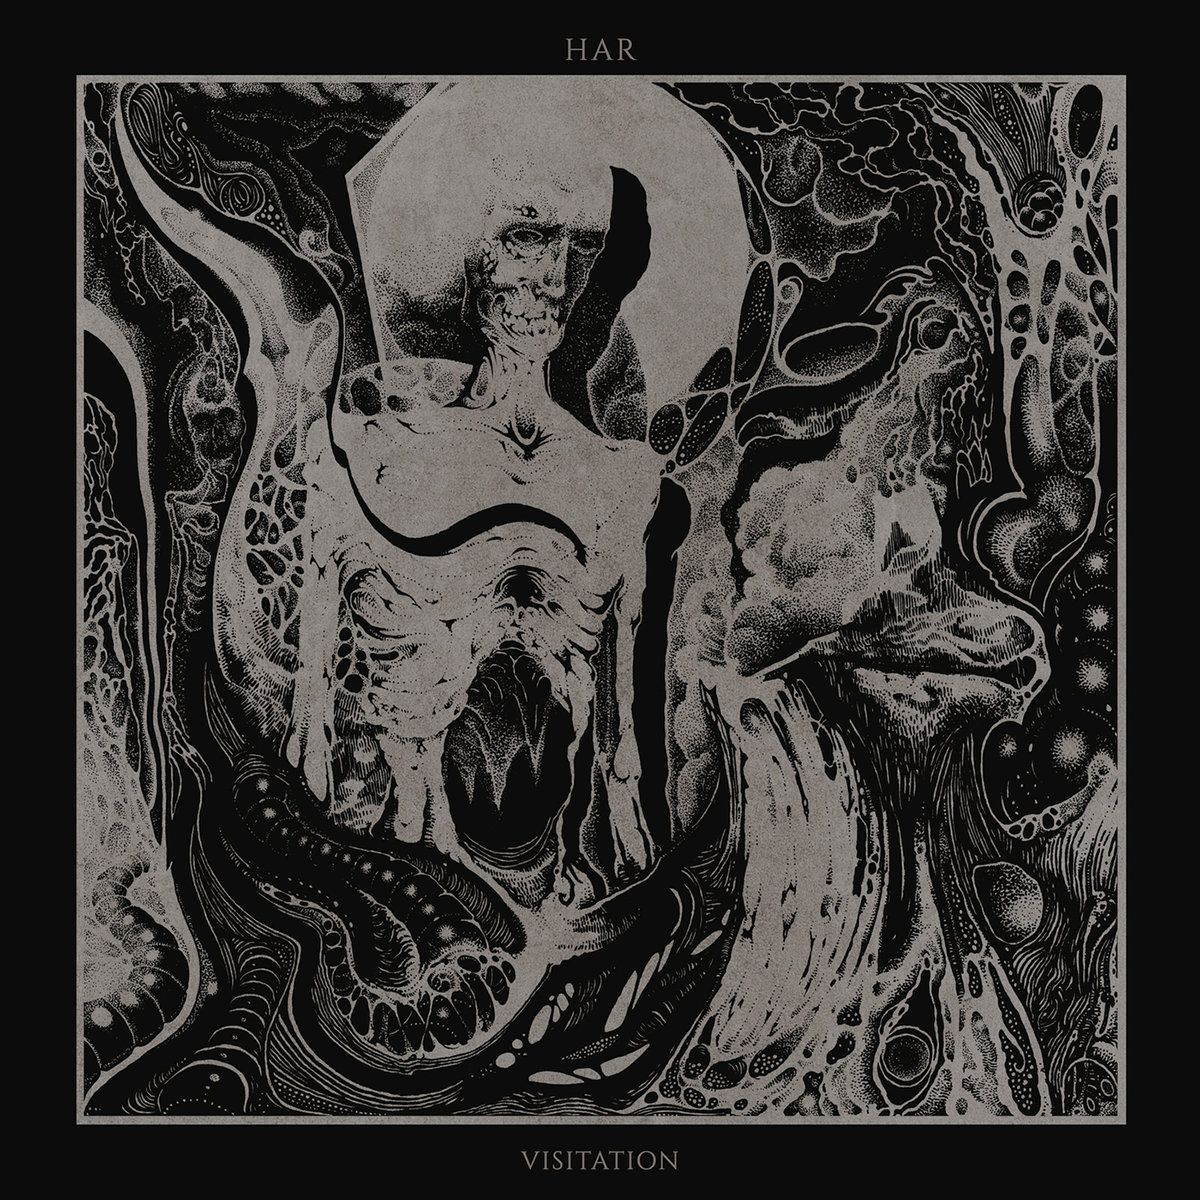 Review for Har - Visitation